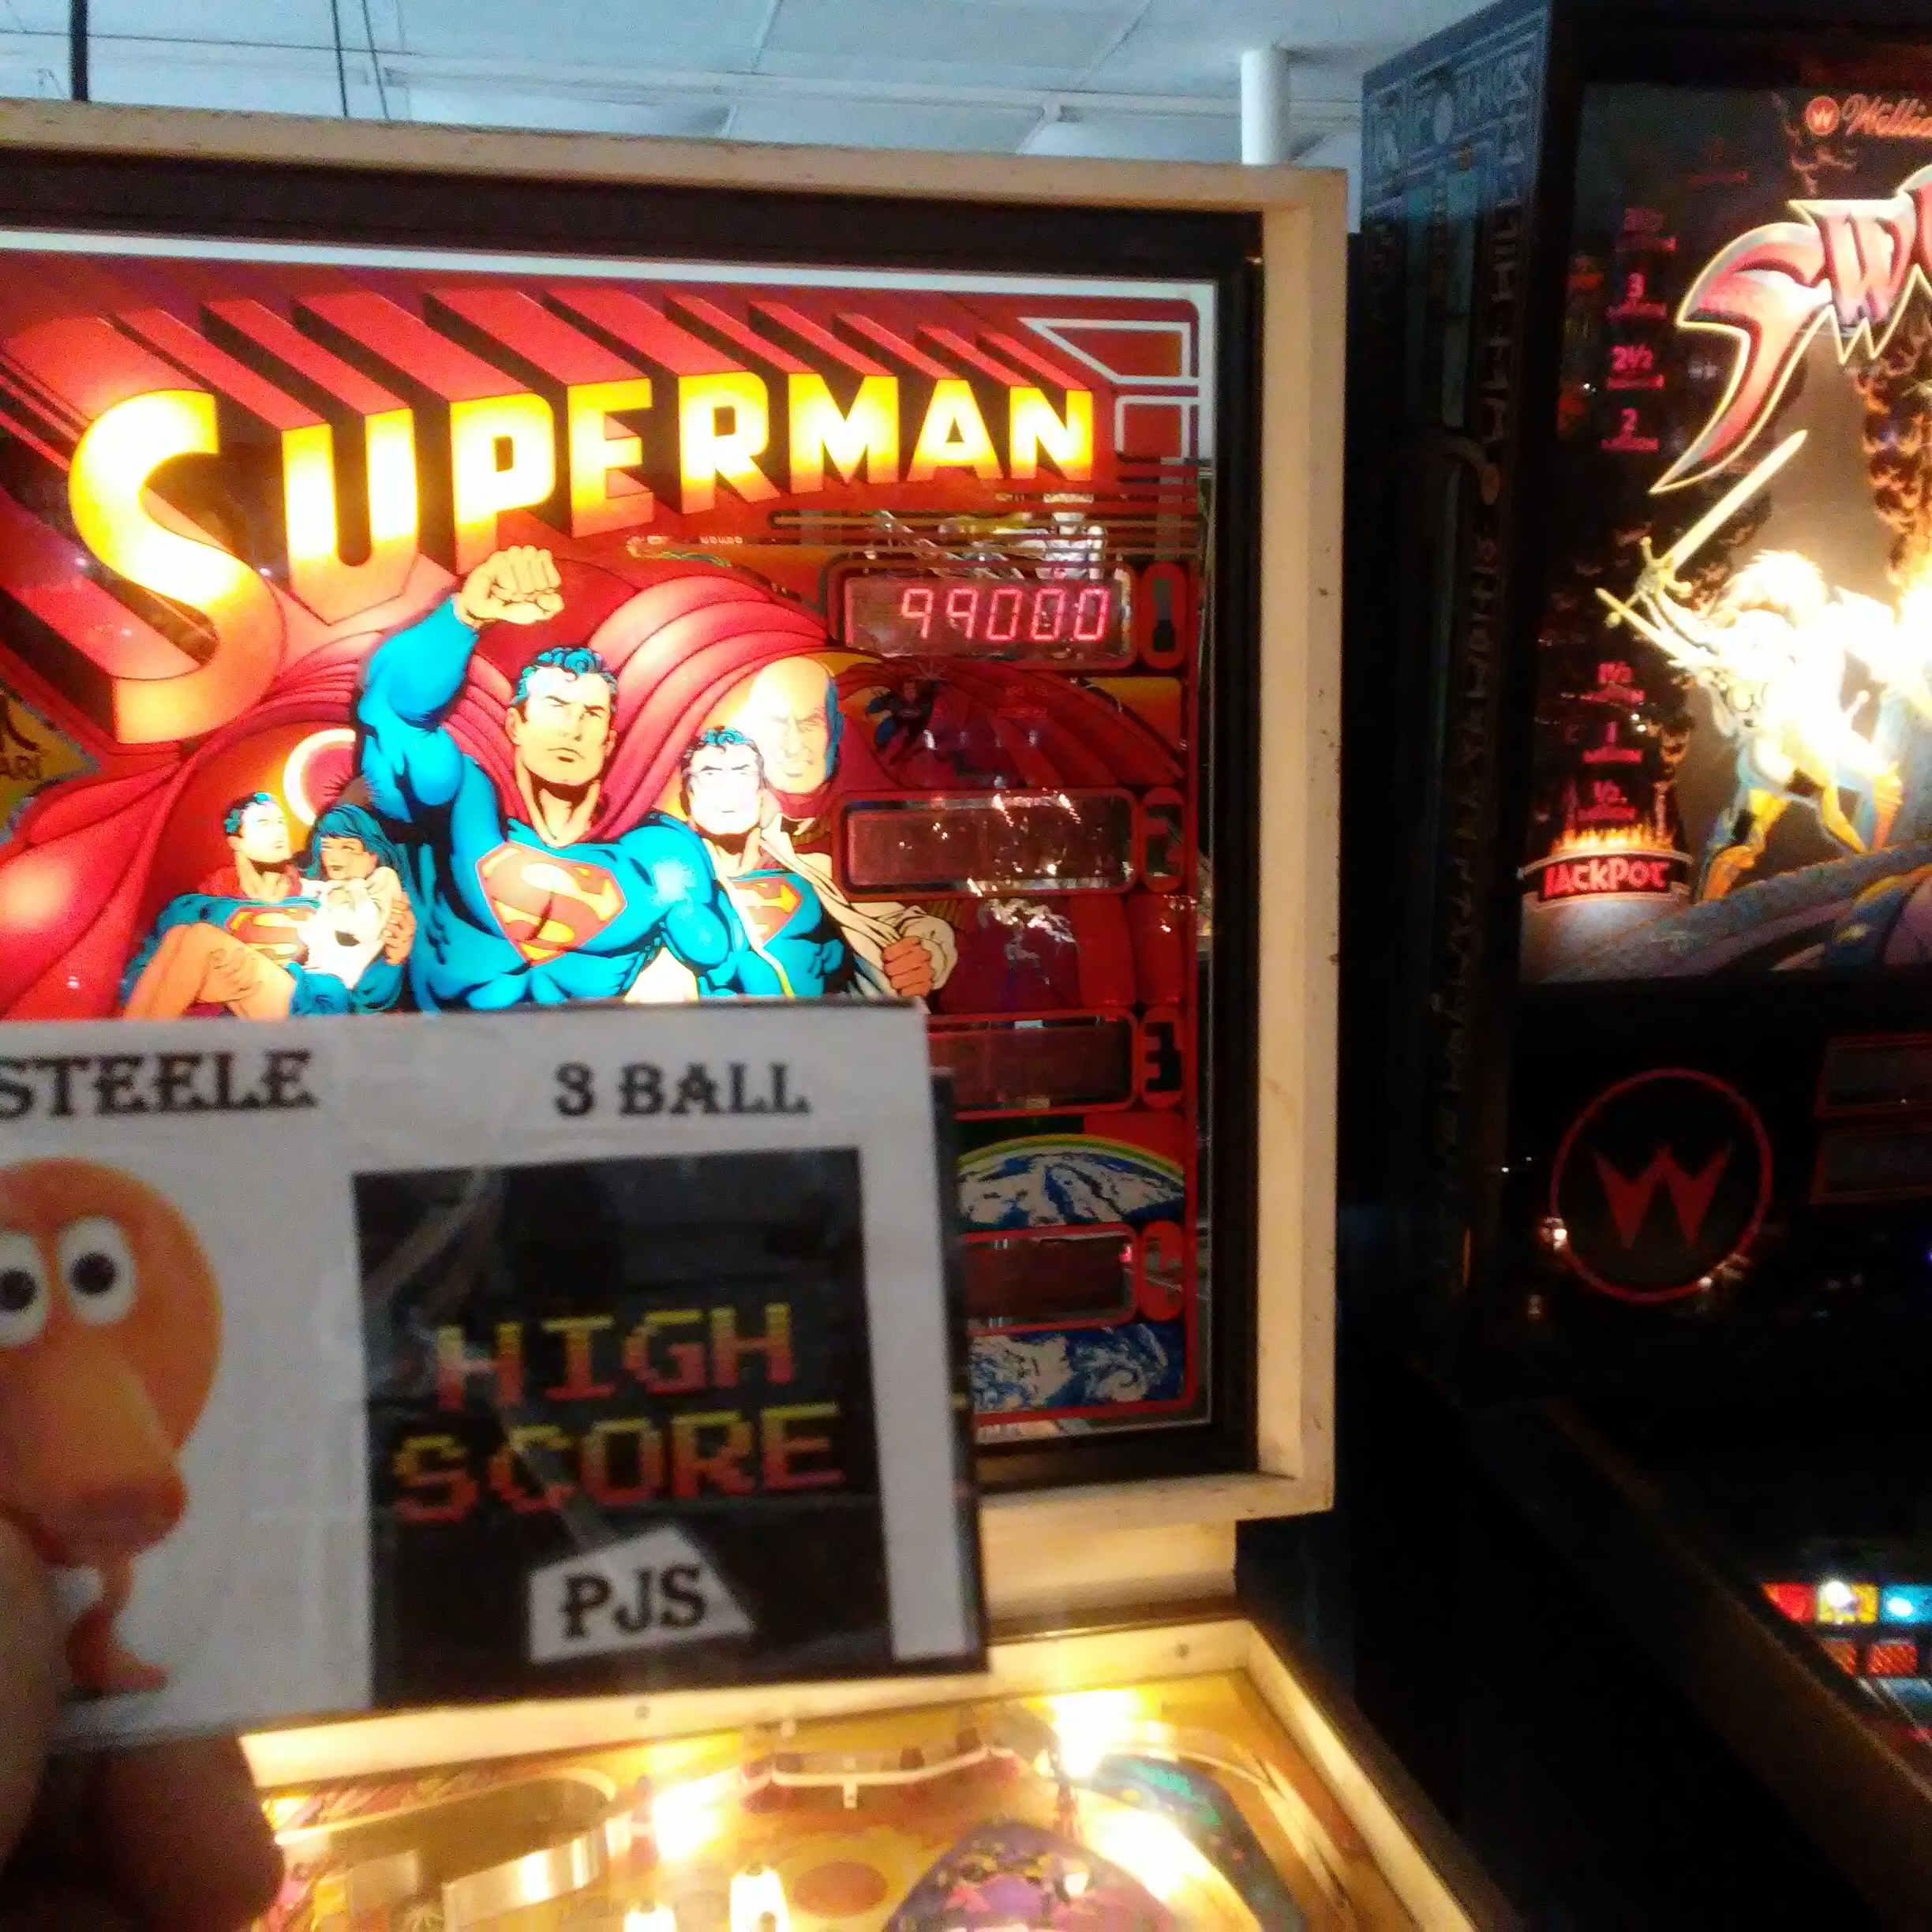 Pjsteele: Superman (Pinball: 3 Balls) 99,000 points on 2018-03-03 20:06:23